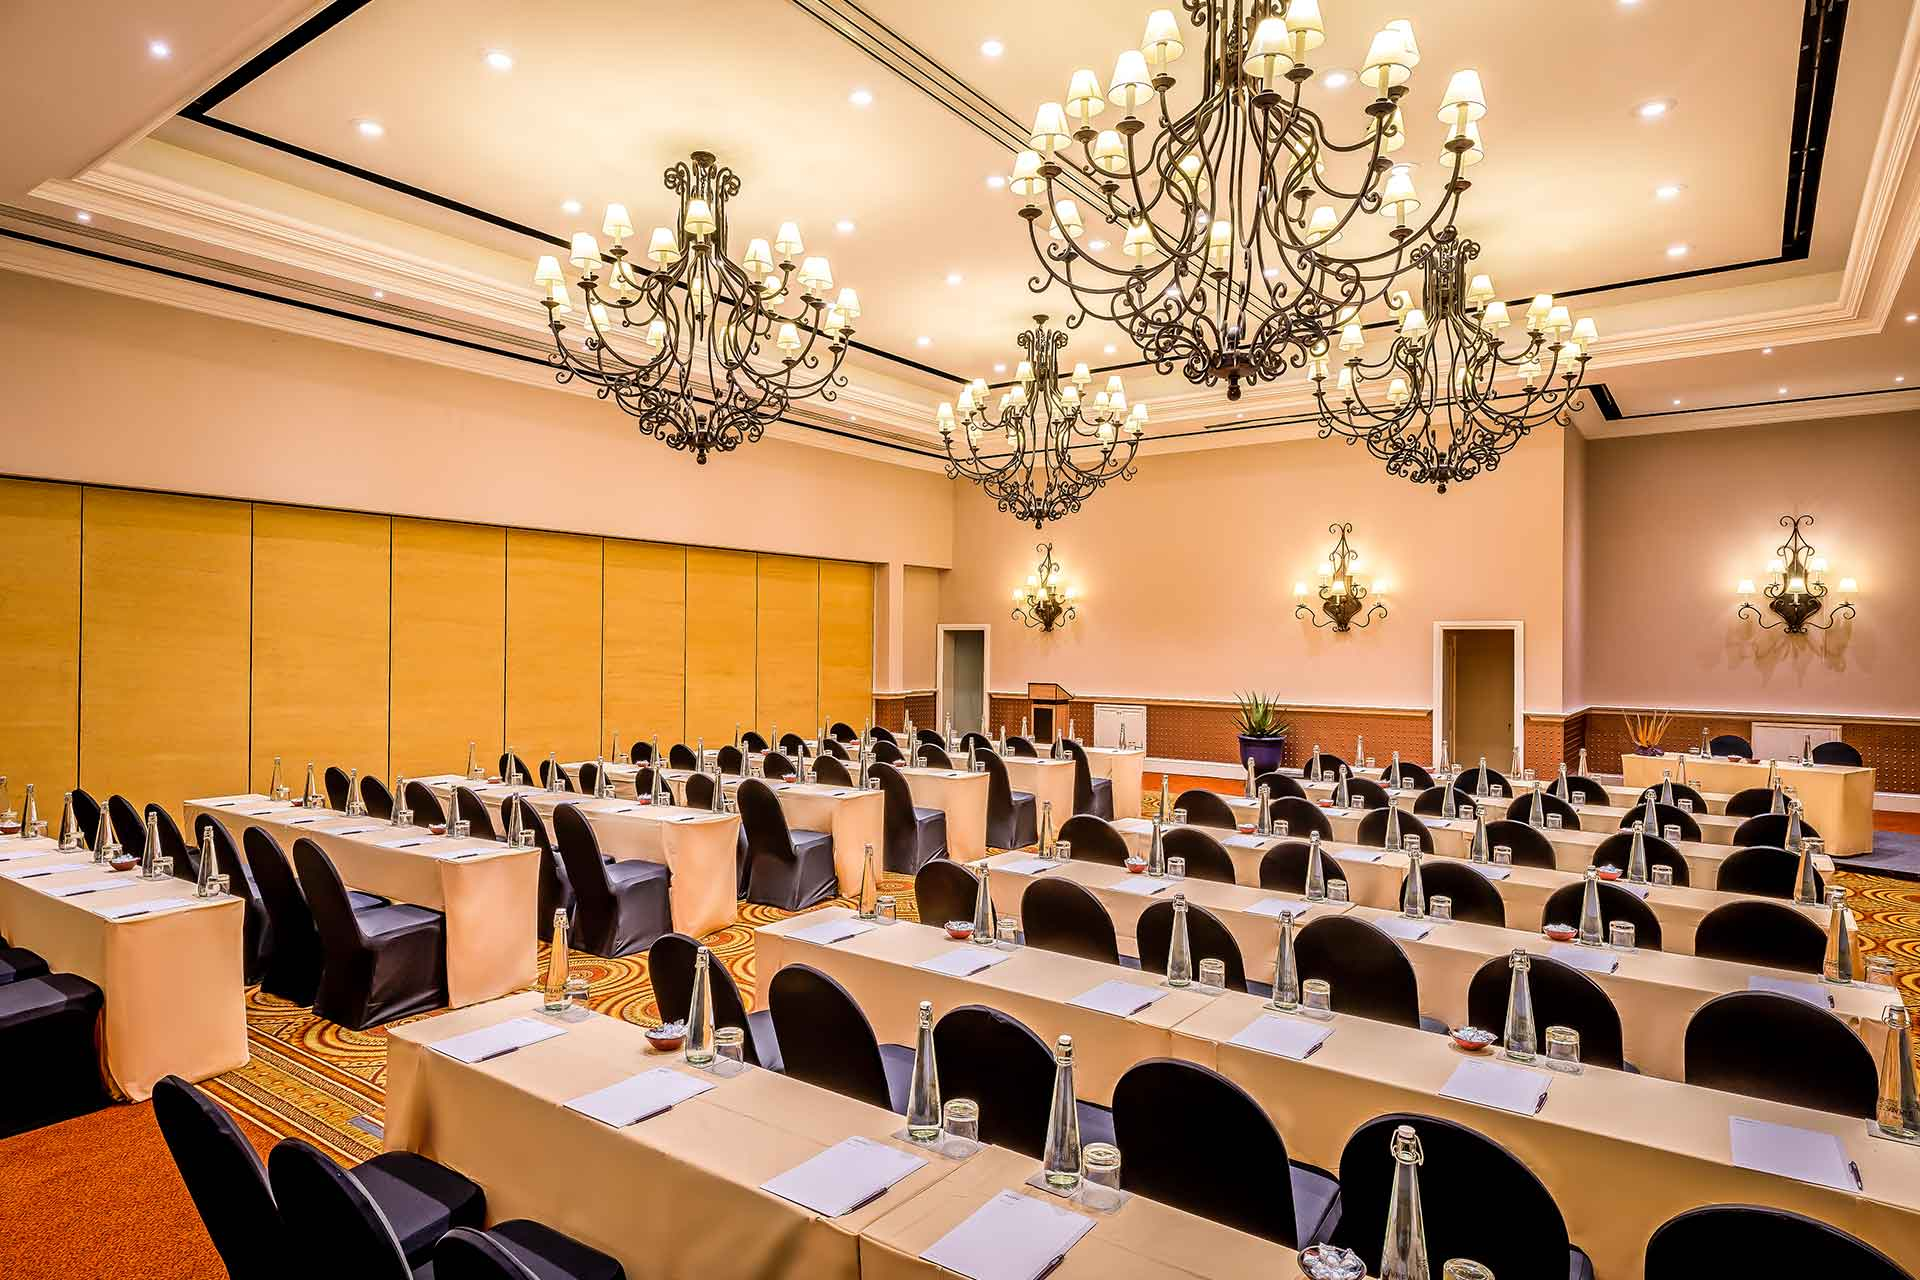 A meeting room at Zambezi Hotel